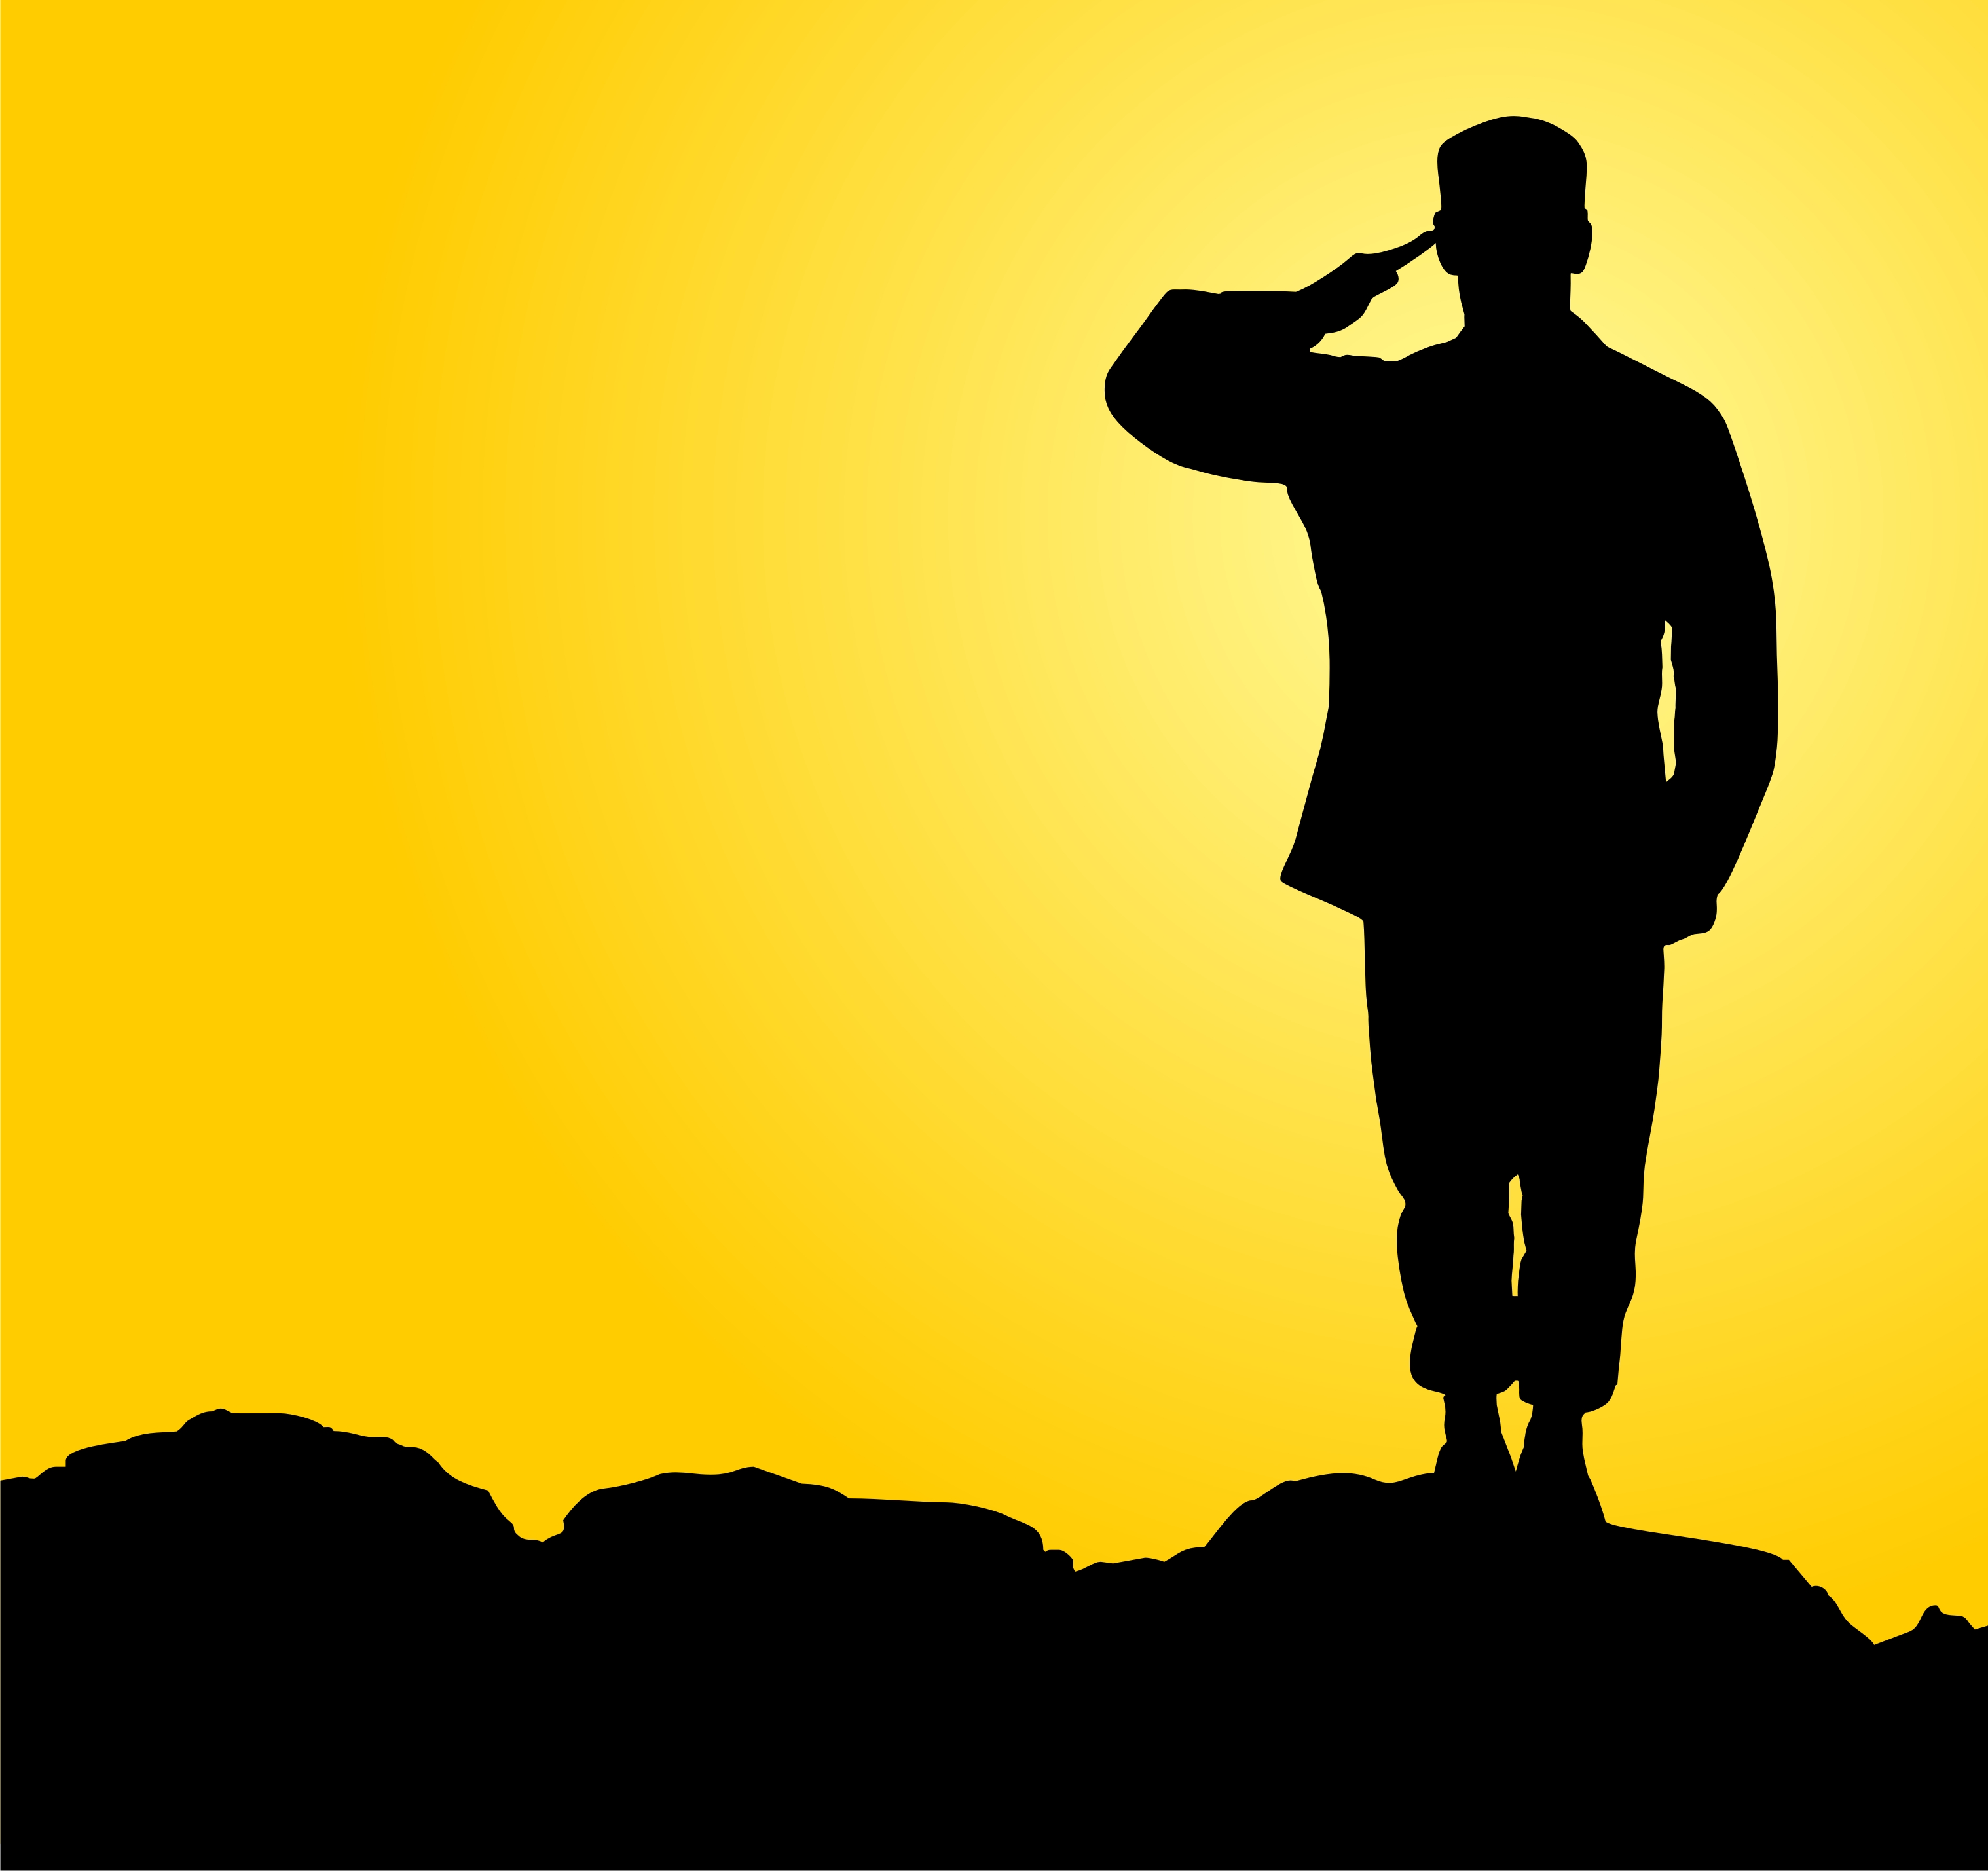 3036x2857 48983ca4f4c5ab014c2c173d54e02c86 Images For Soldier Saluting